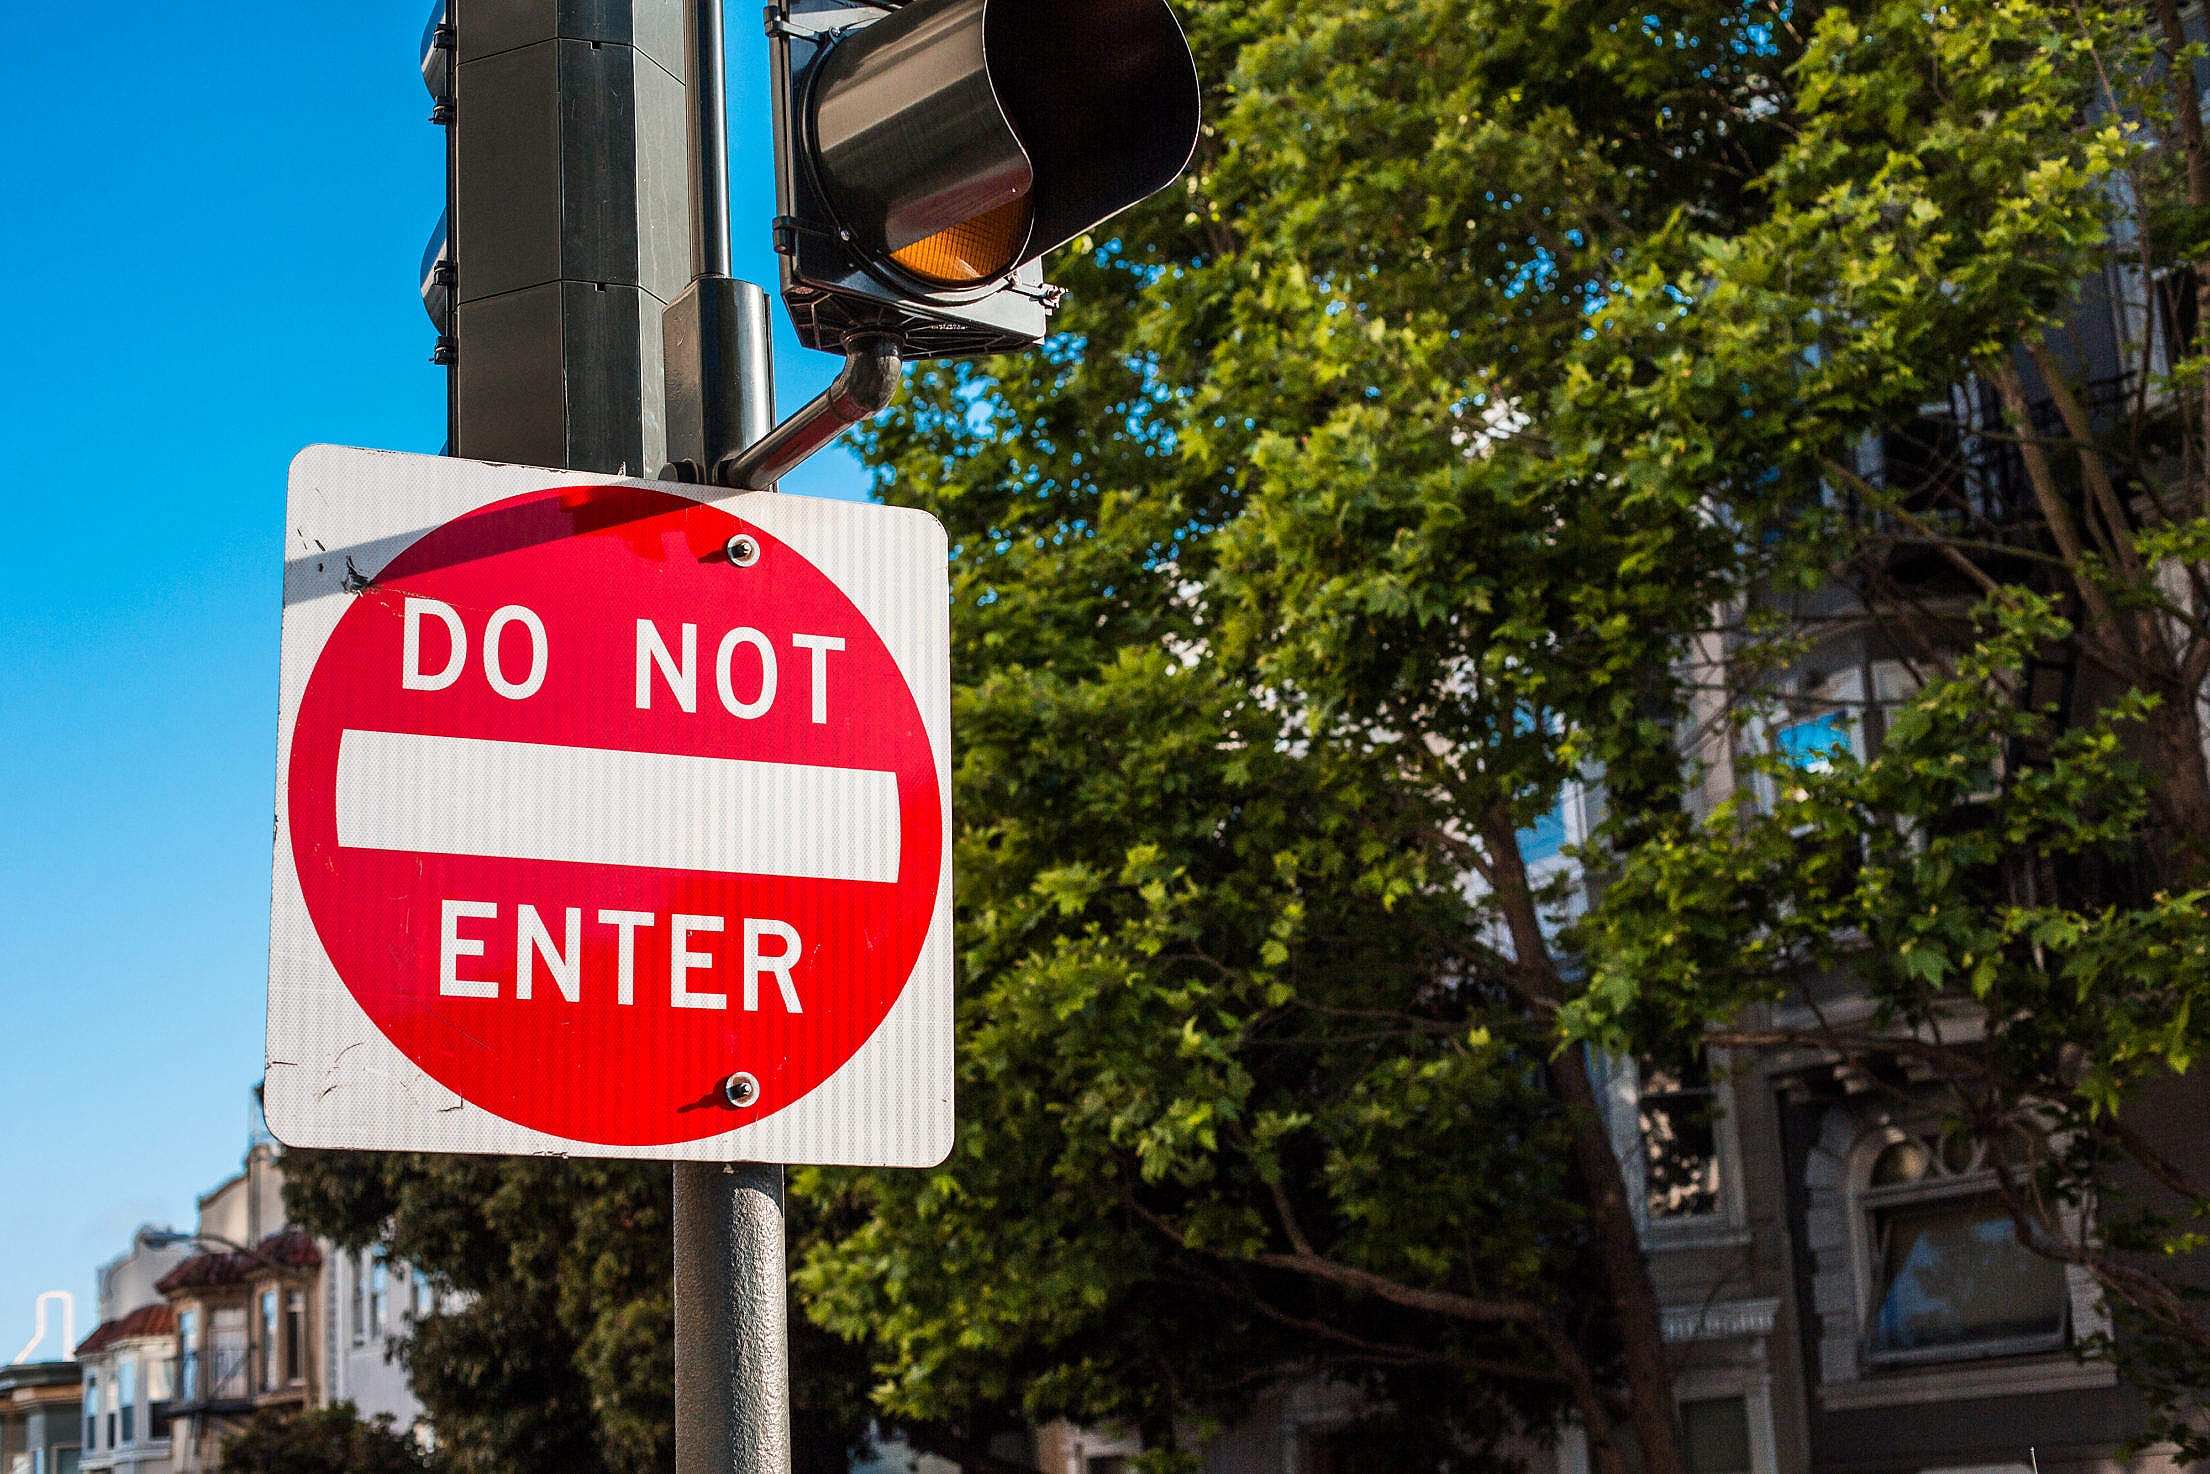 Do Not Enter Traffic Control Sign in San Francisco Free Stock Photo